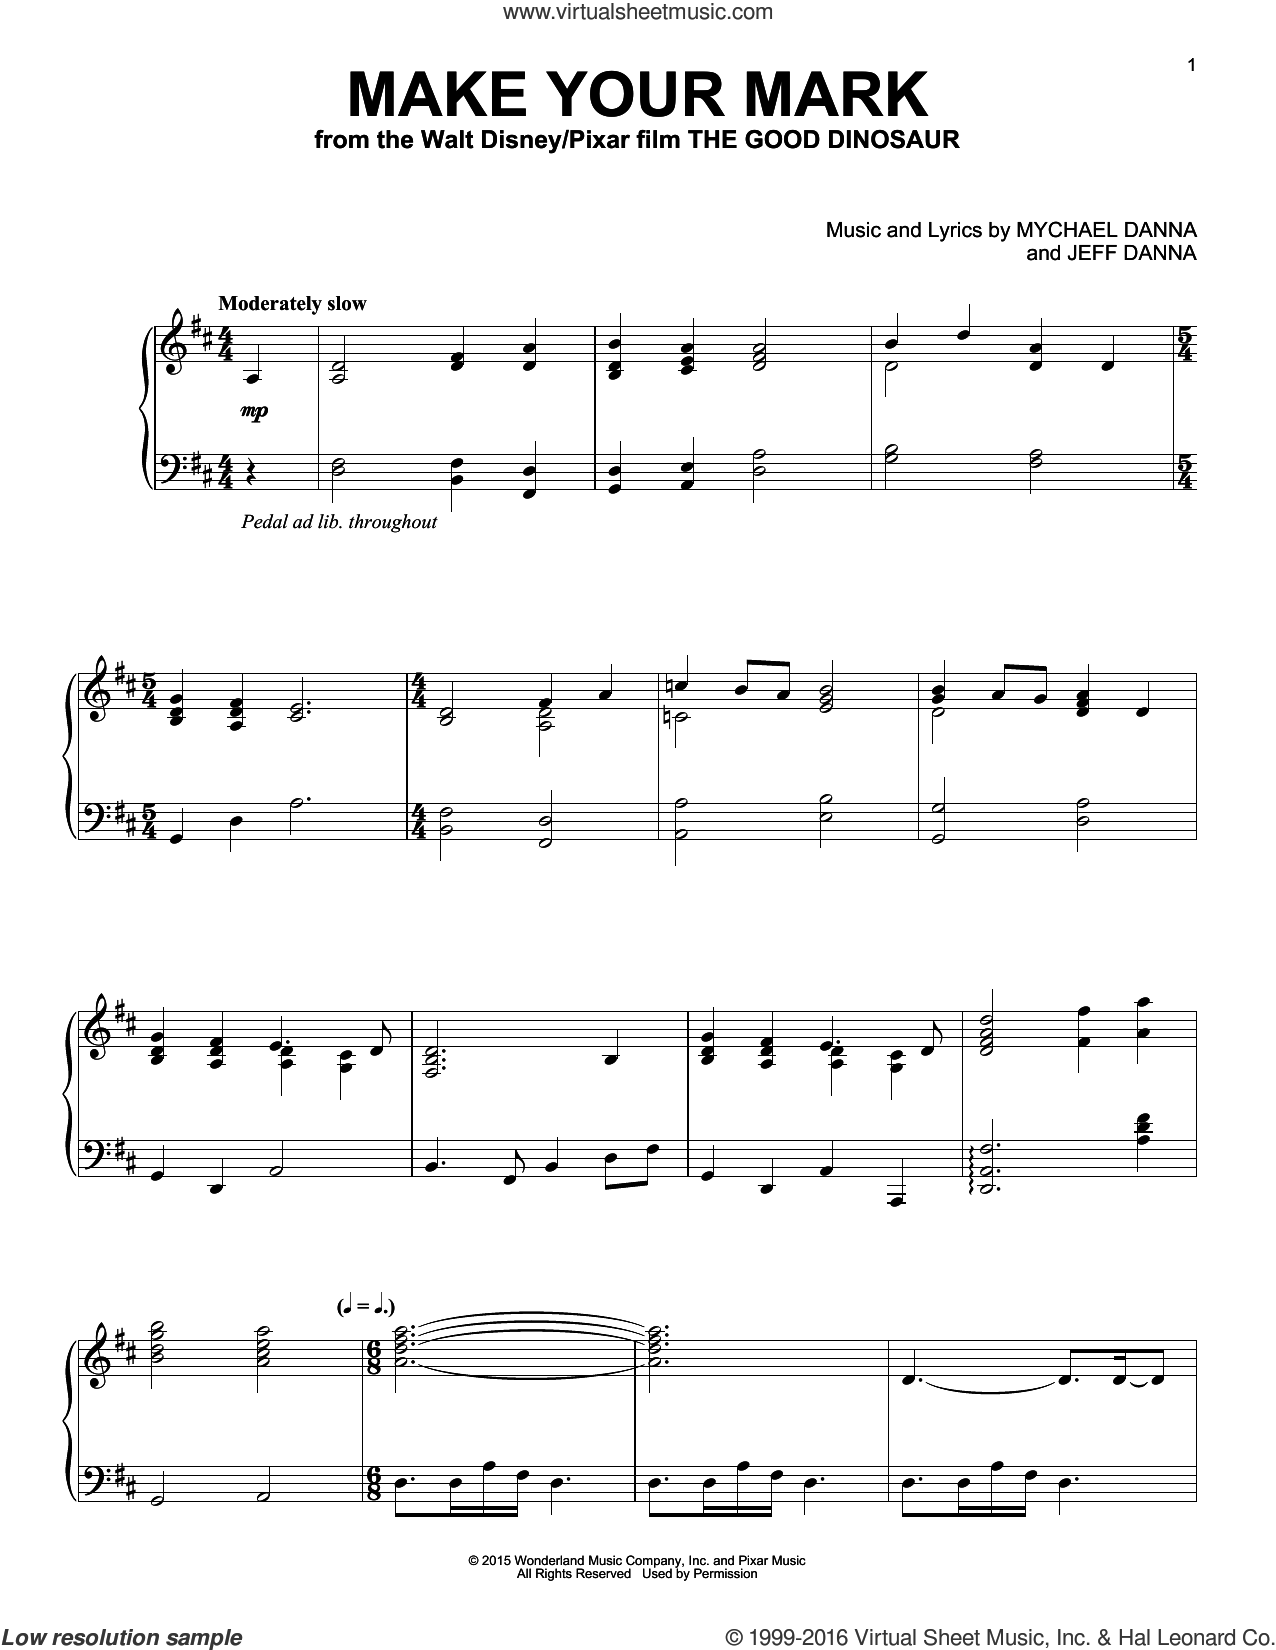 Make Your Mark sheet music for piano solo by Jeff Danna, Mychael & Jeff Danna and Mychael Danna. Score Image Preview.